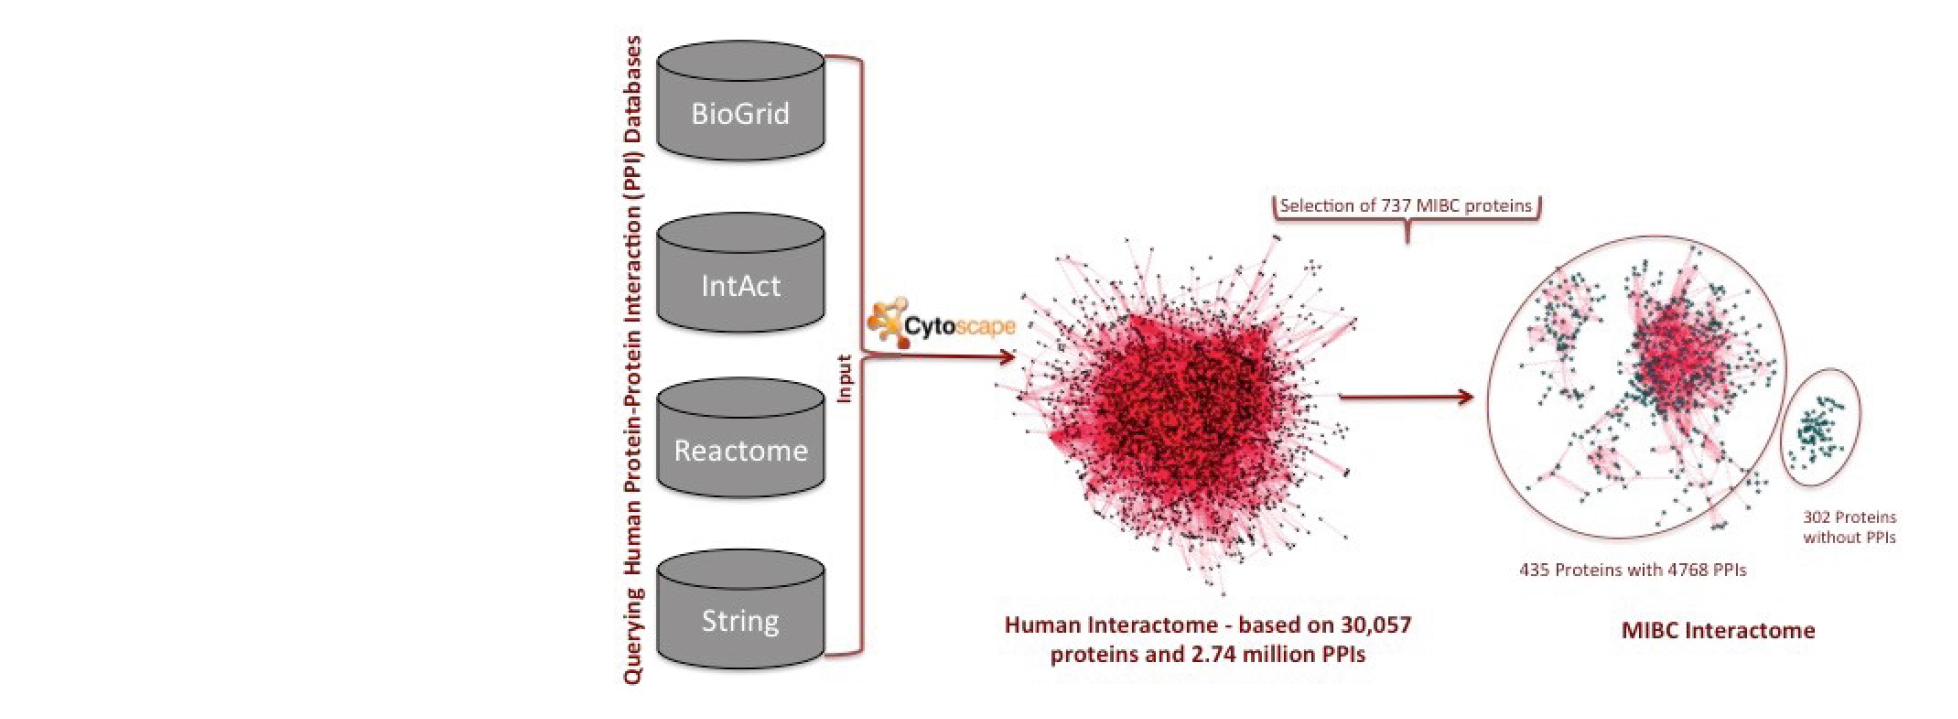 Generating the muscle invasive bladder cancer interactome.